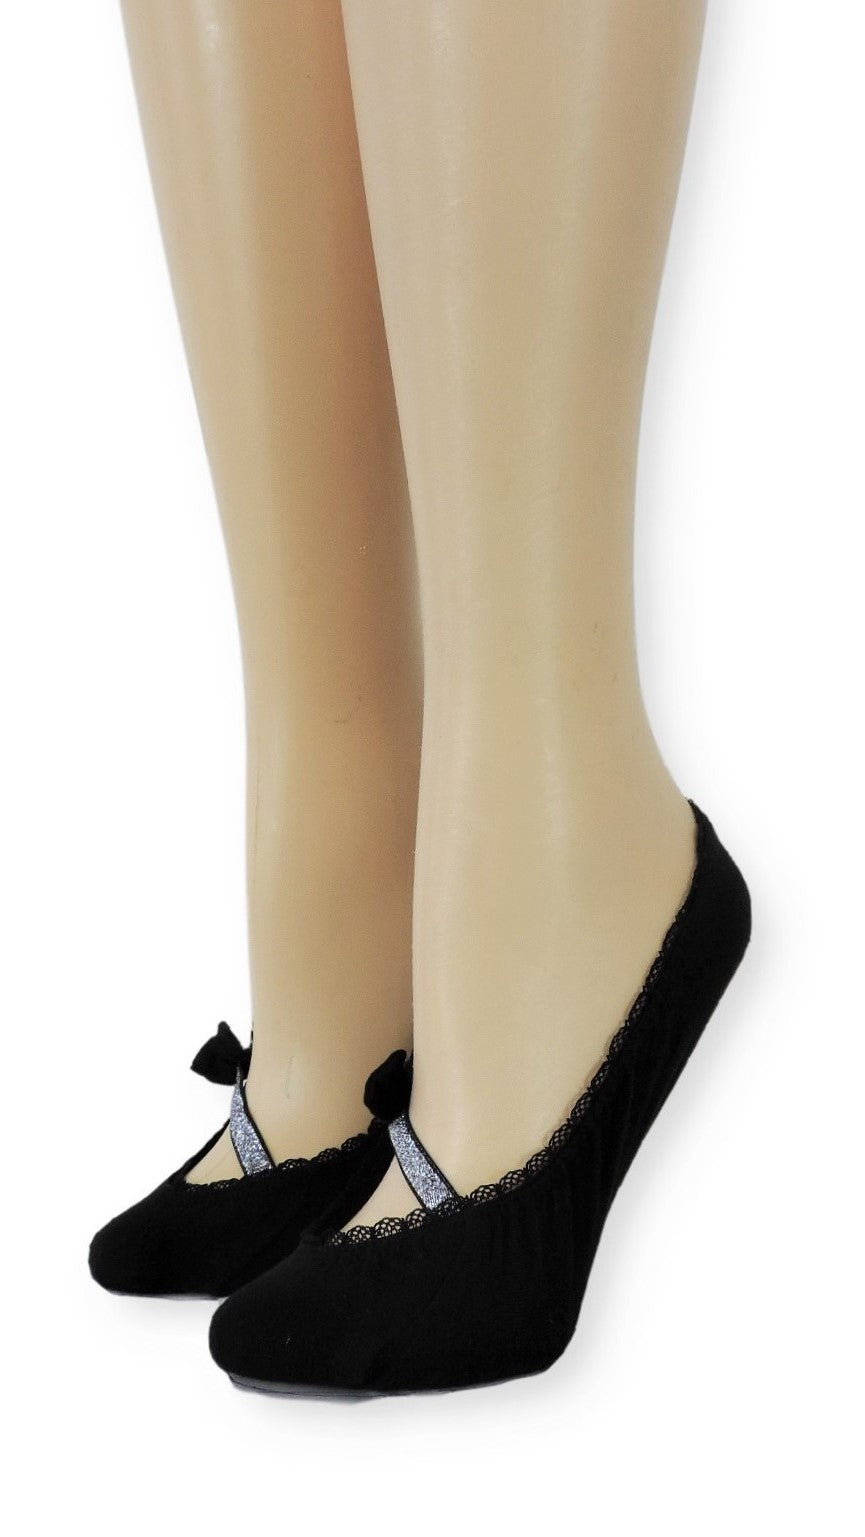 Sober Ankle Socks with Glitter Bow Strap